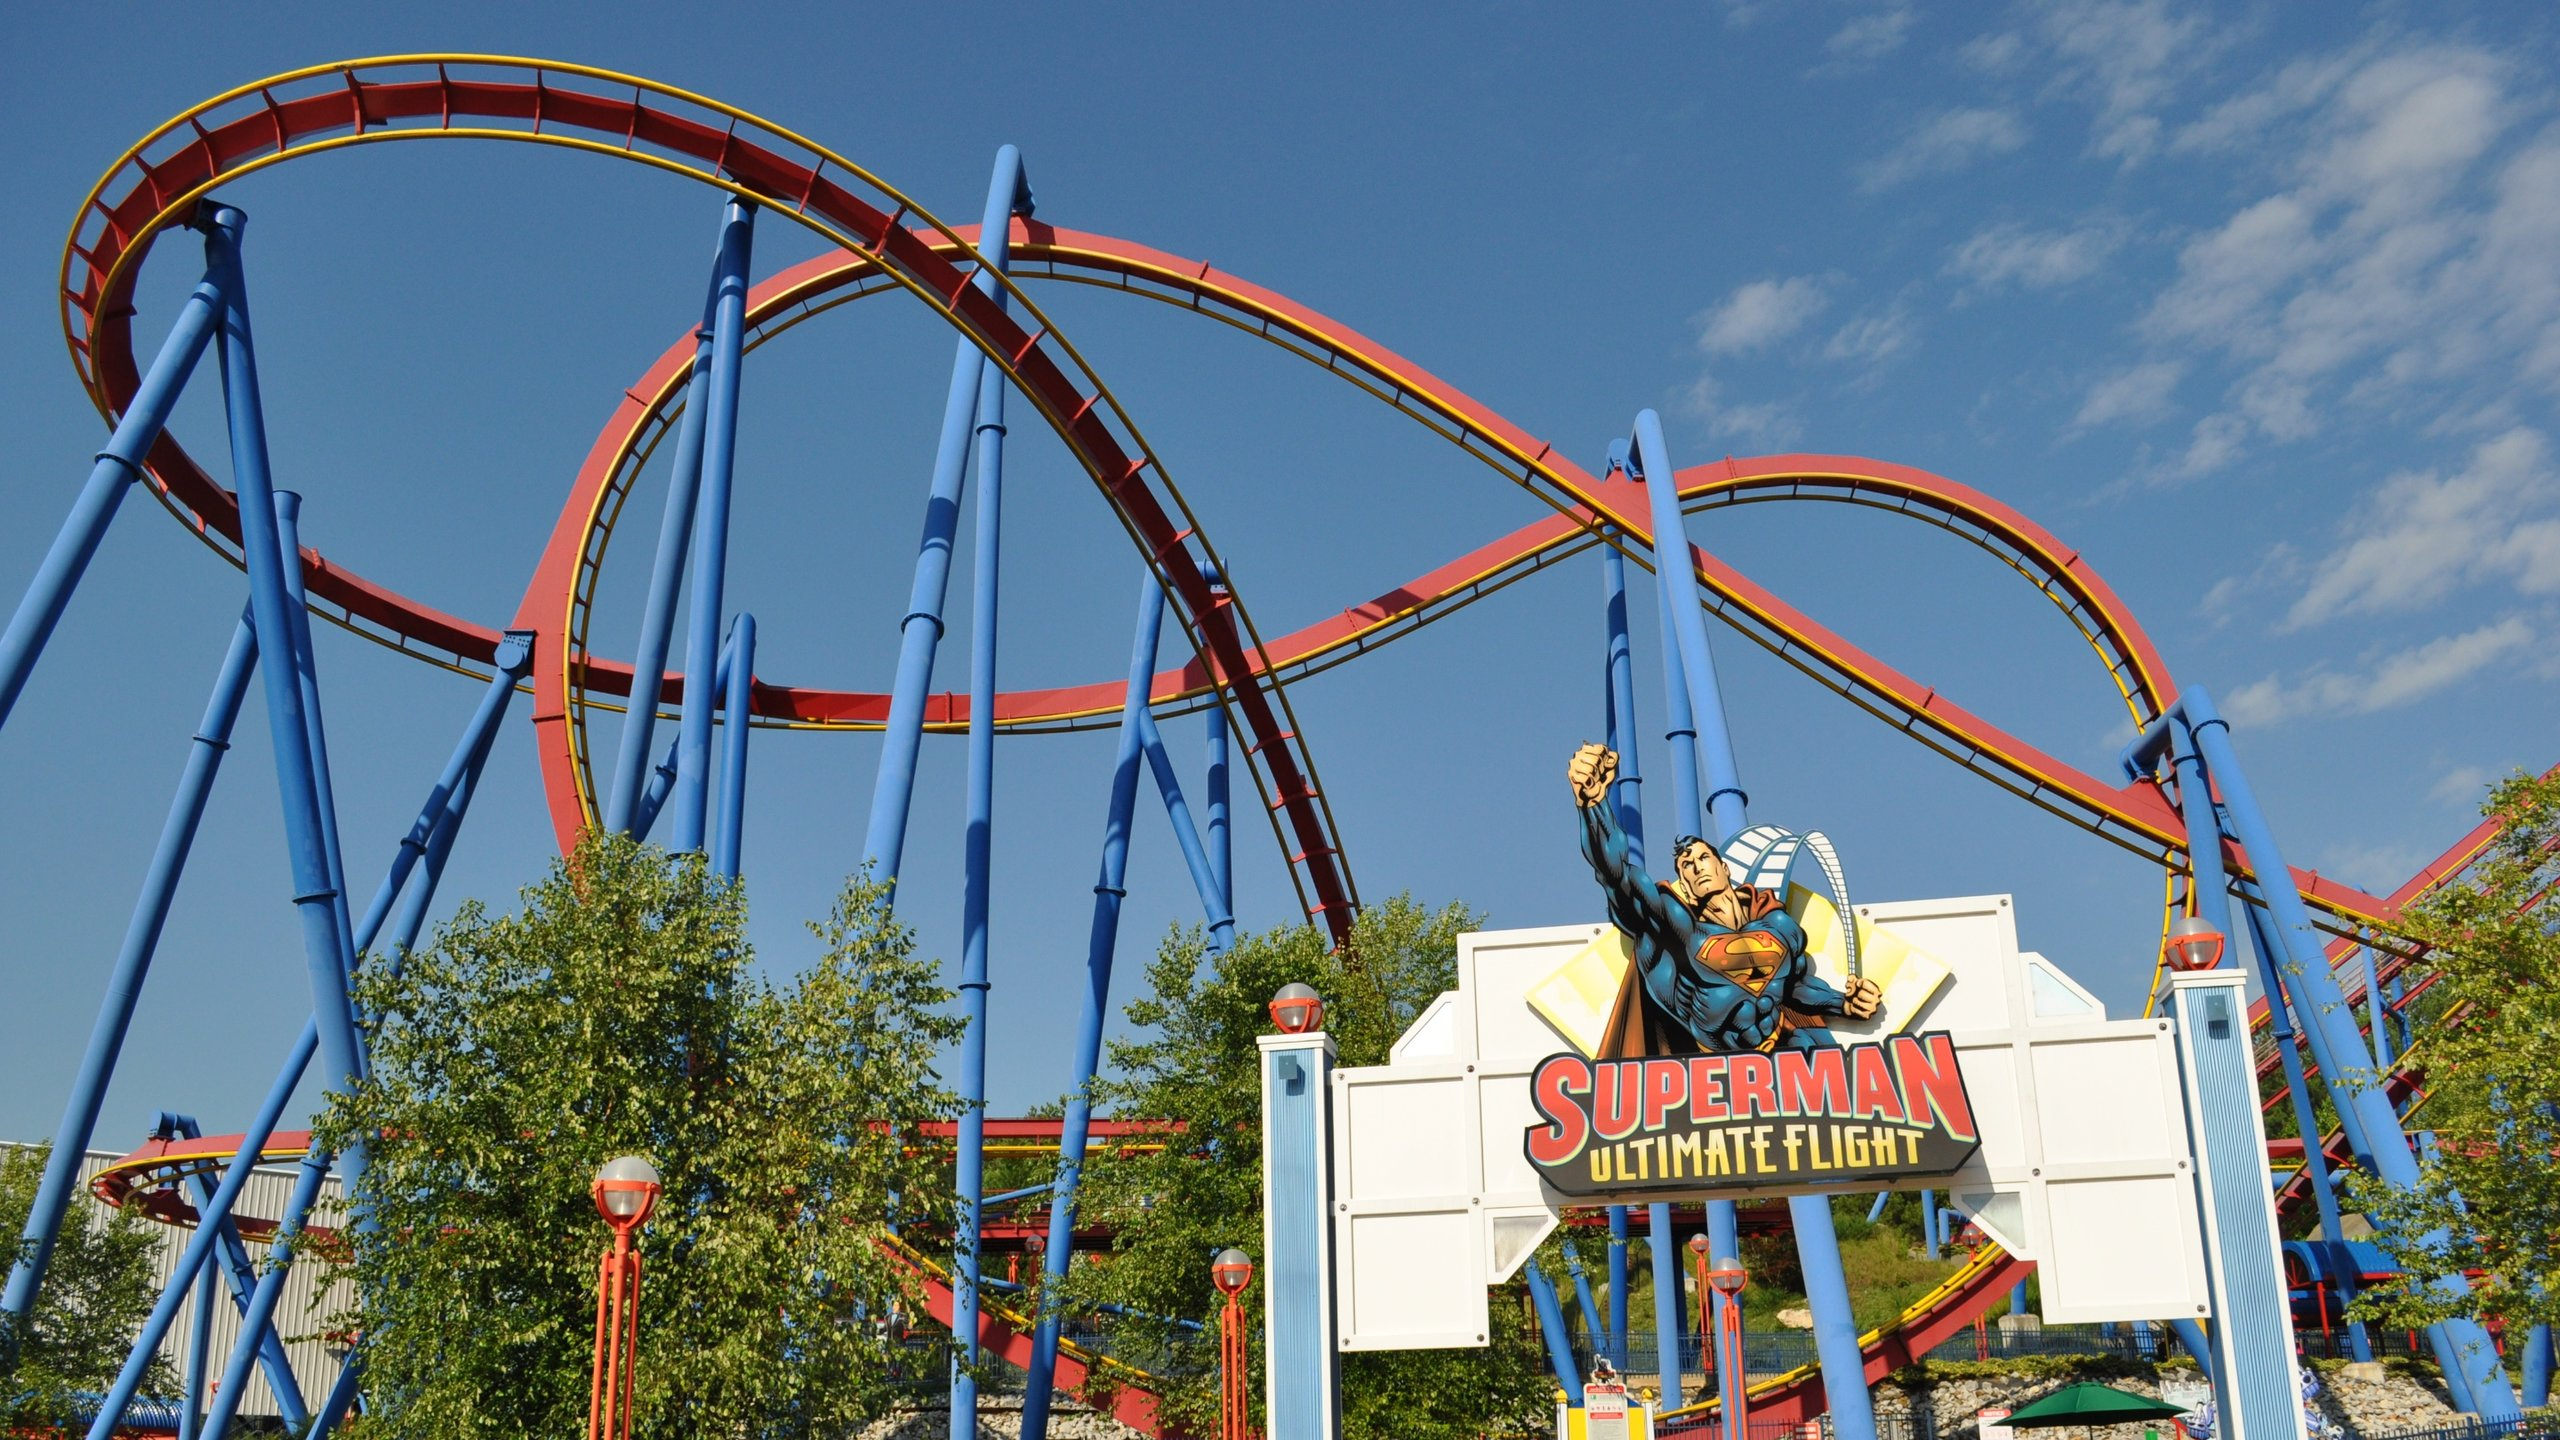 10 Best Hotels Closest to Six Flags Over Georgia in Atlanta for 2019